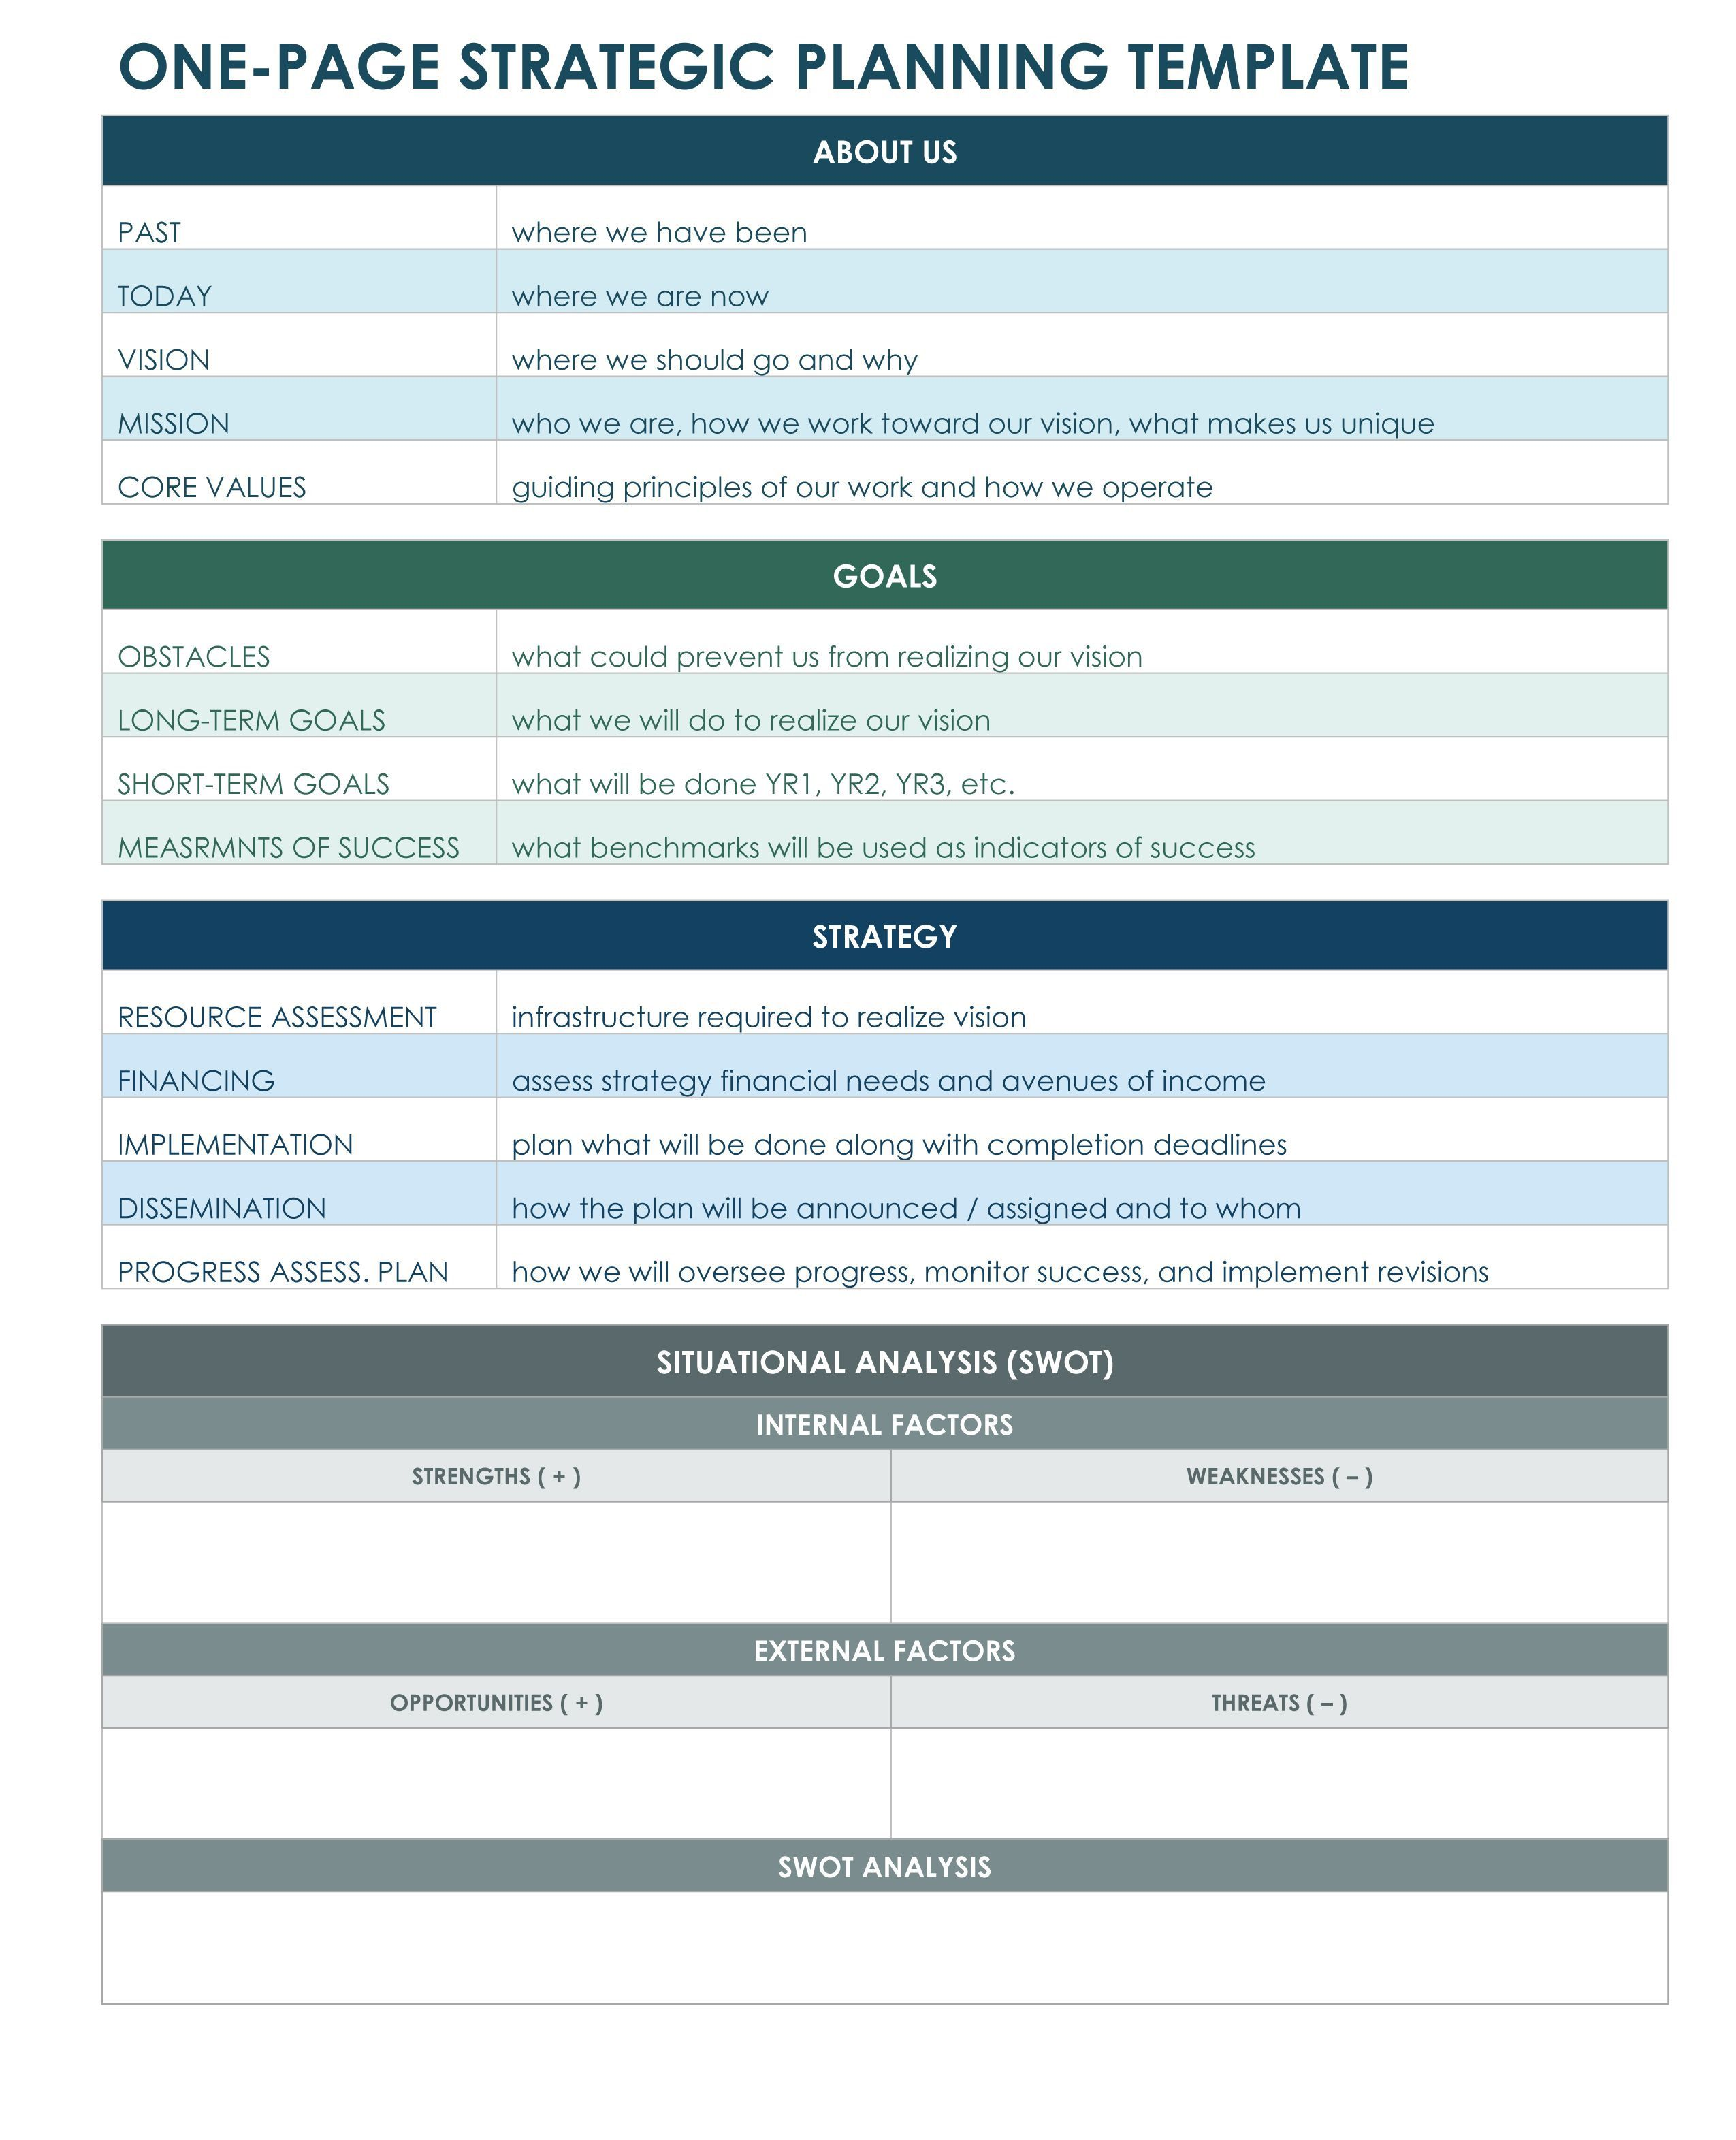 004 Awesome Strategic Planning Template Free Inspiration  Excel 6 It For CioFull